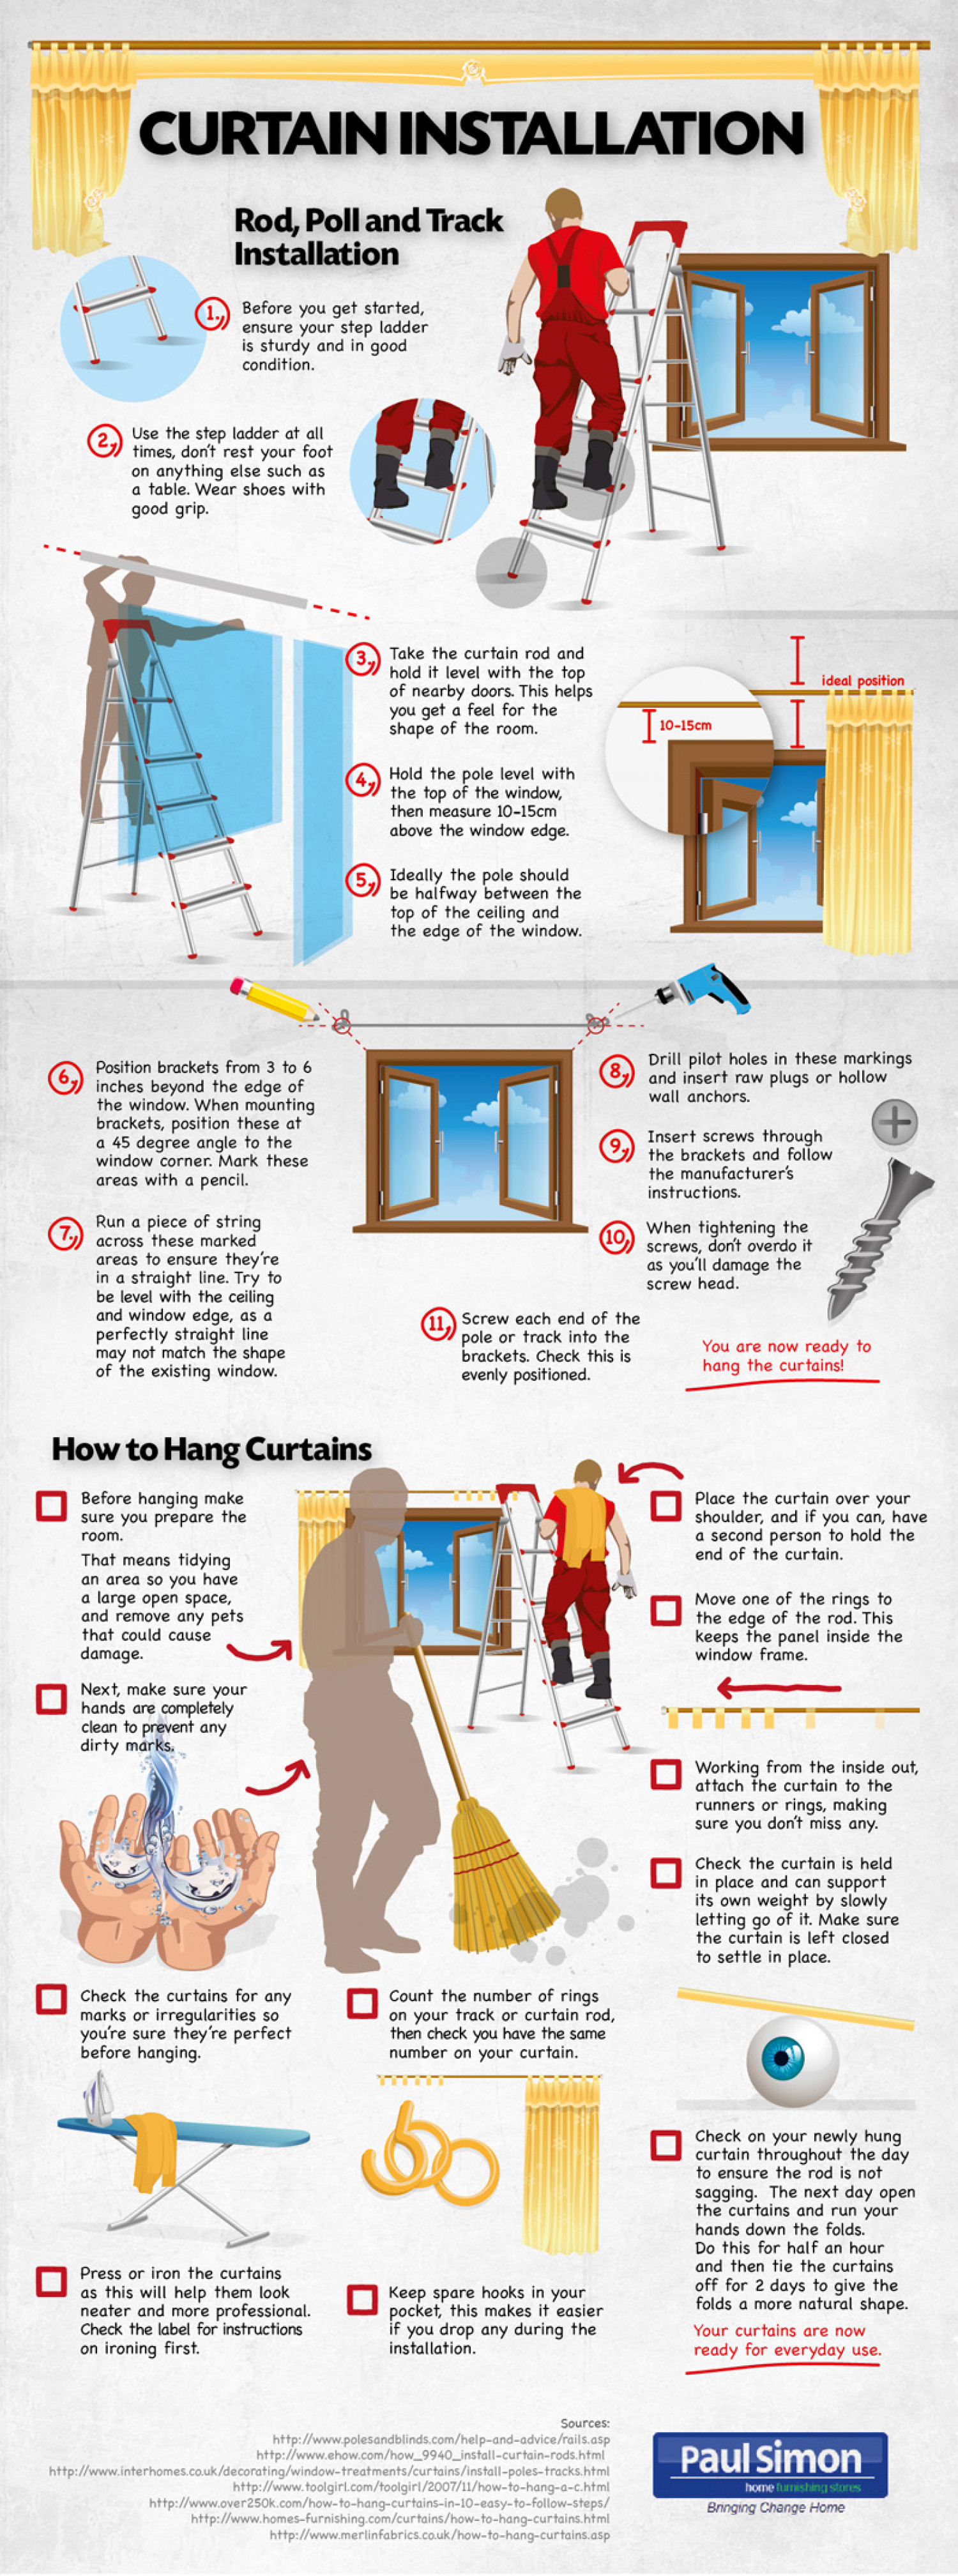 How to install curtains Infographic